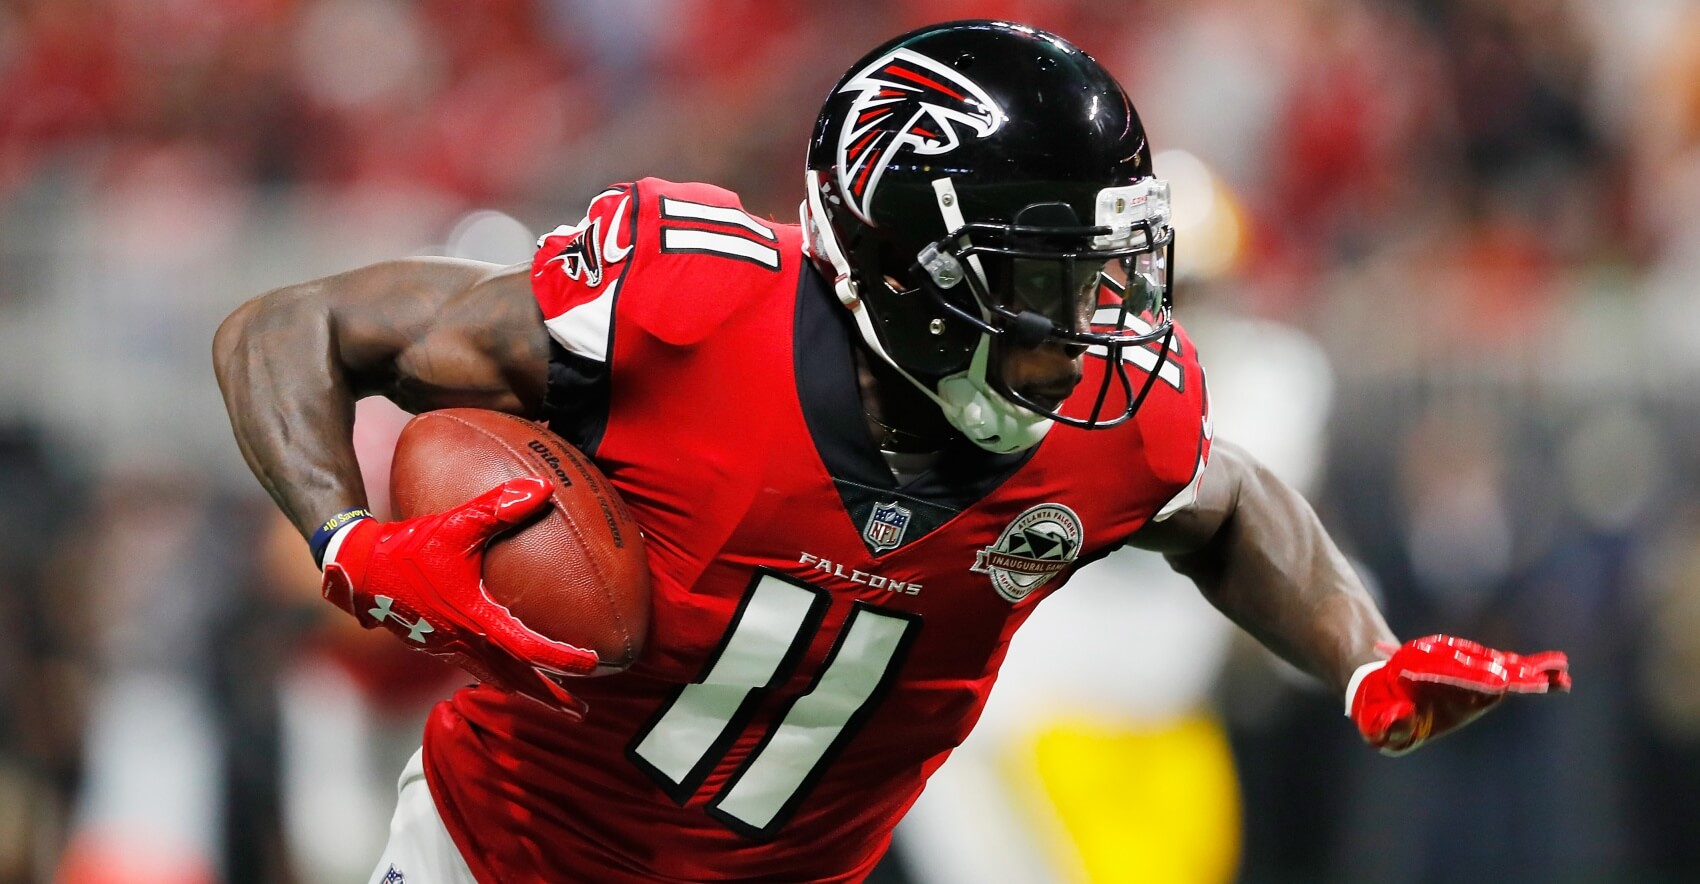 Fantasy Football Film Study: Is Julio Jones a Poor Red-Zone WR?